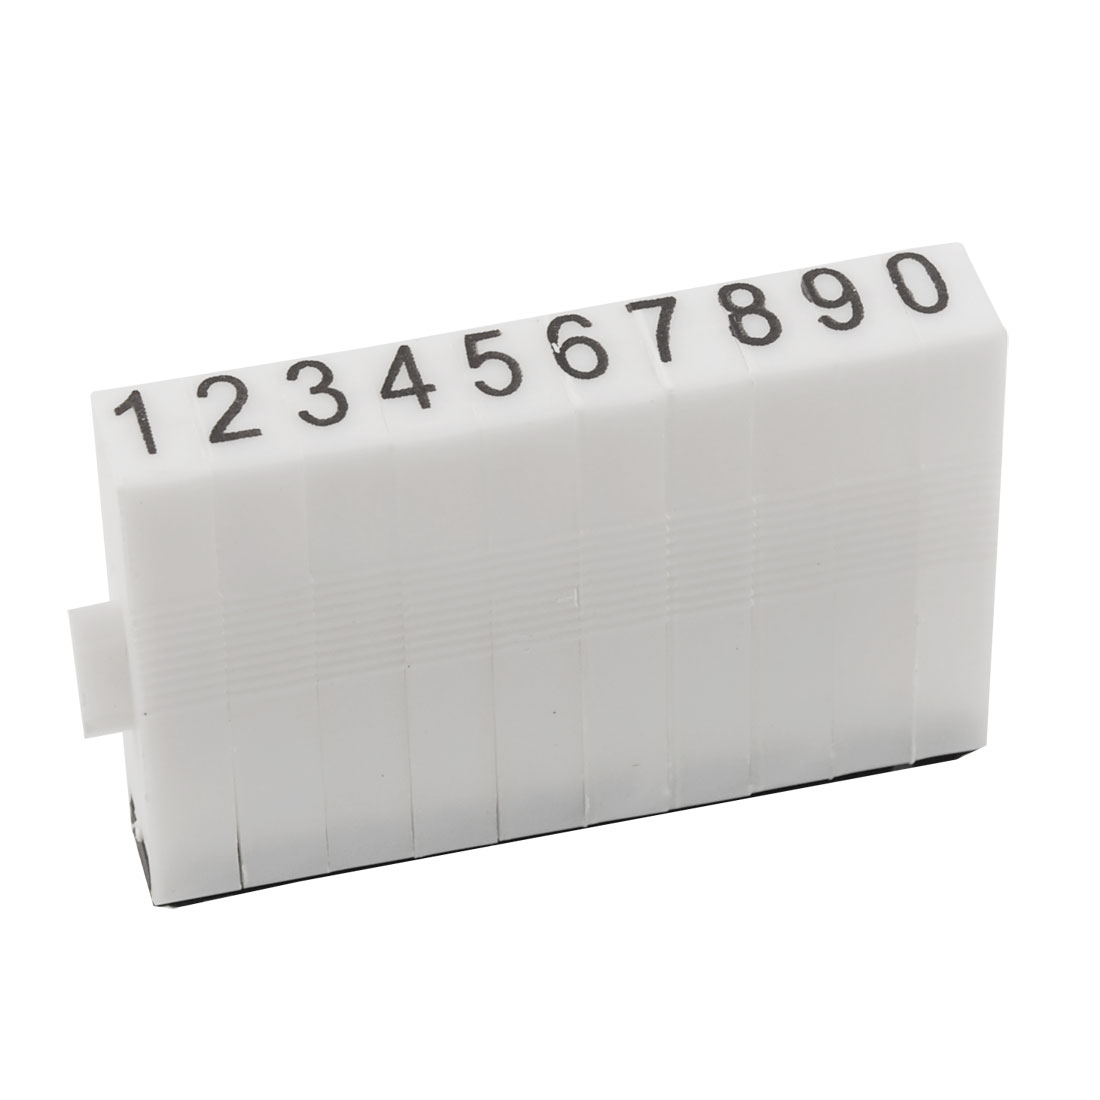 Rubber Head 10 Digits Arabic Numerals Combination Numbering Stamp Block